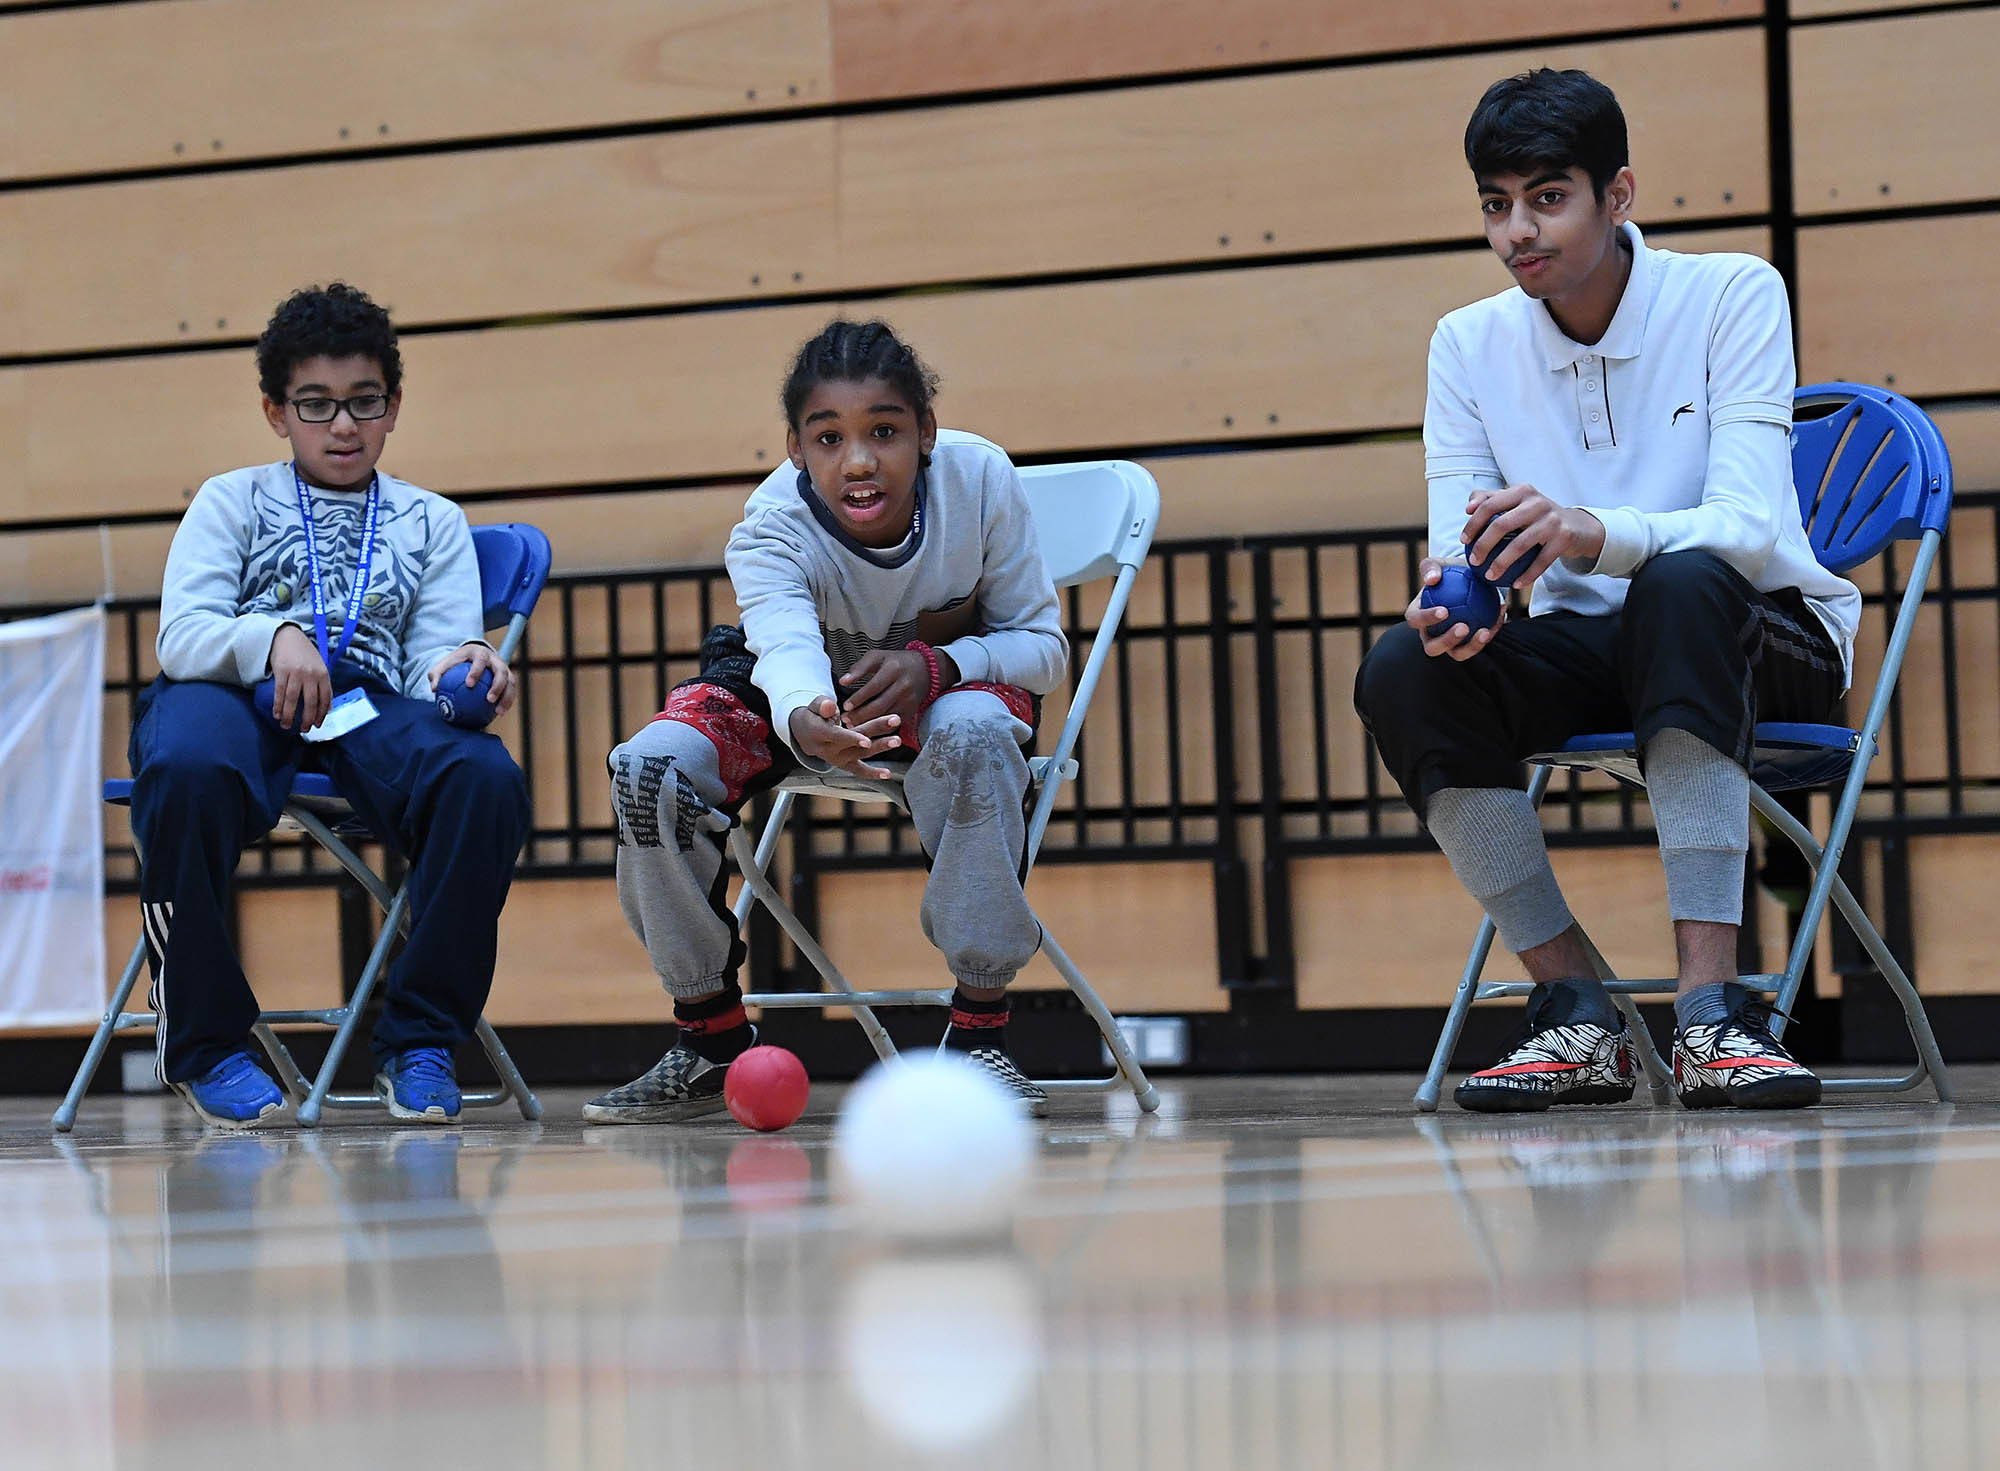 Children participate in a boccia session